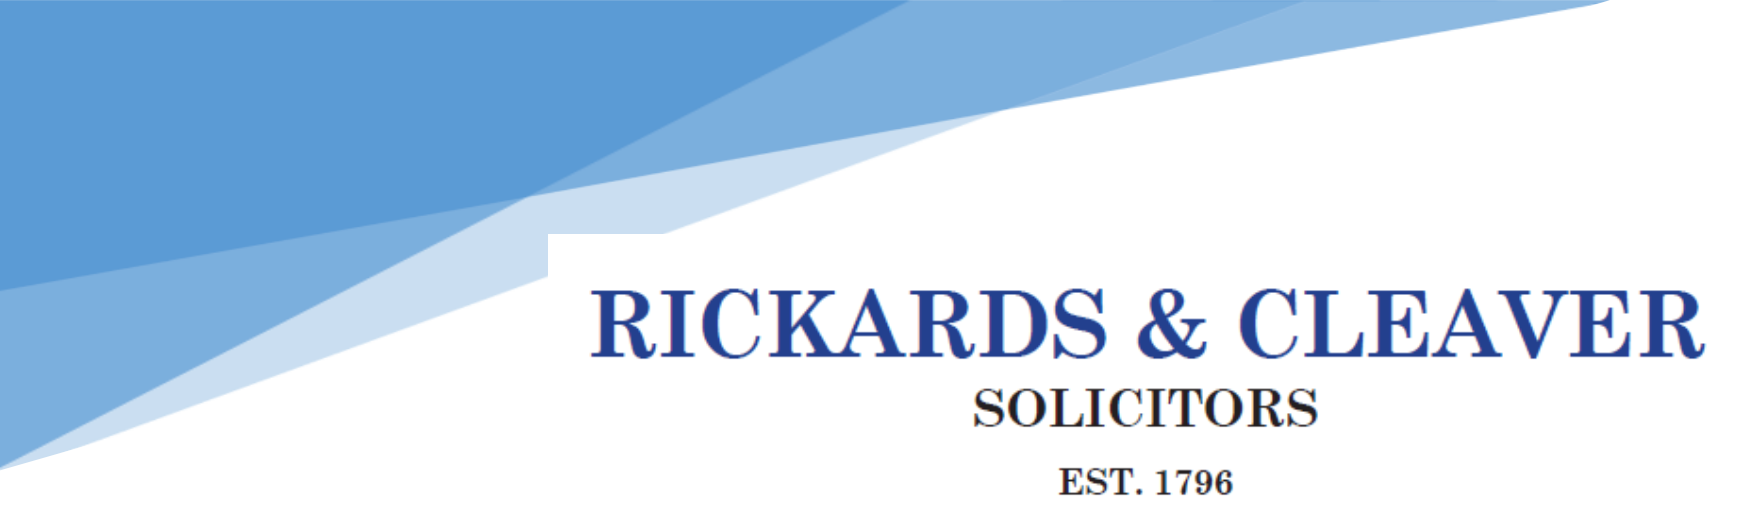 Rickards and Cleaver Solicitors Offer